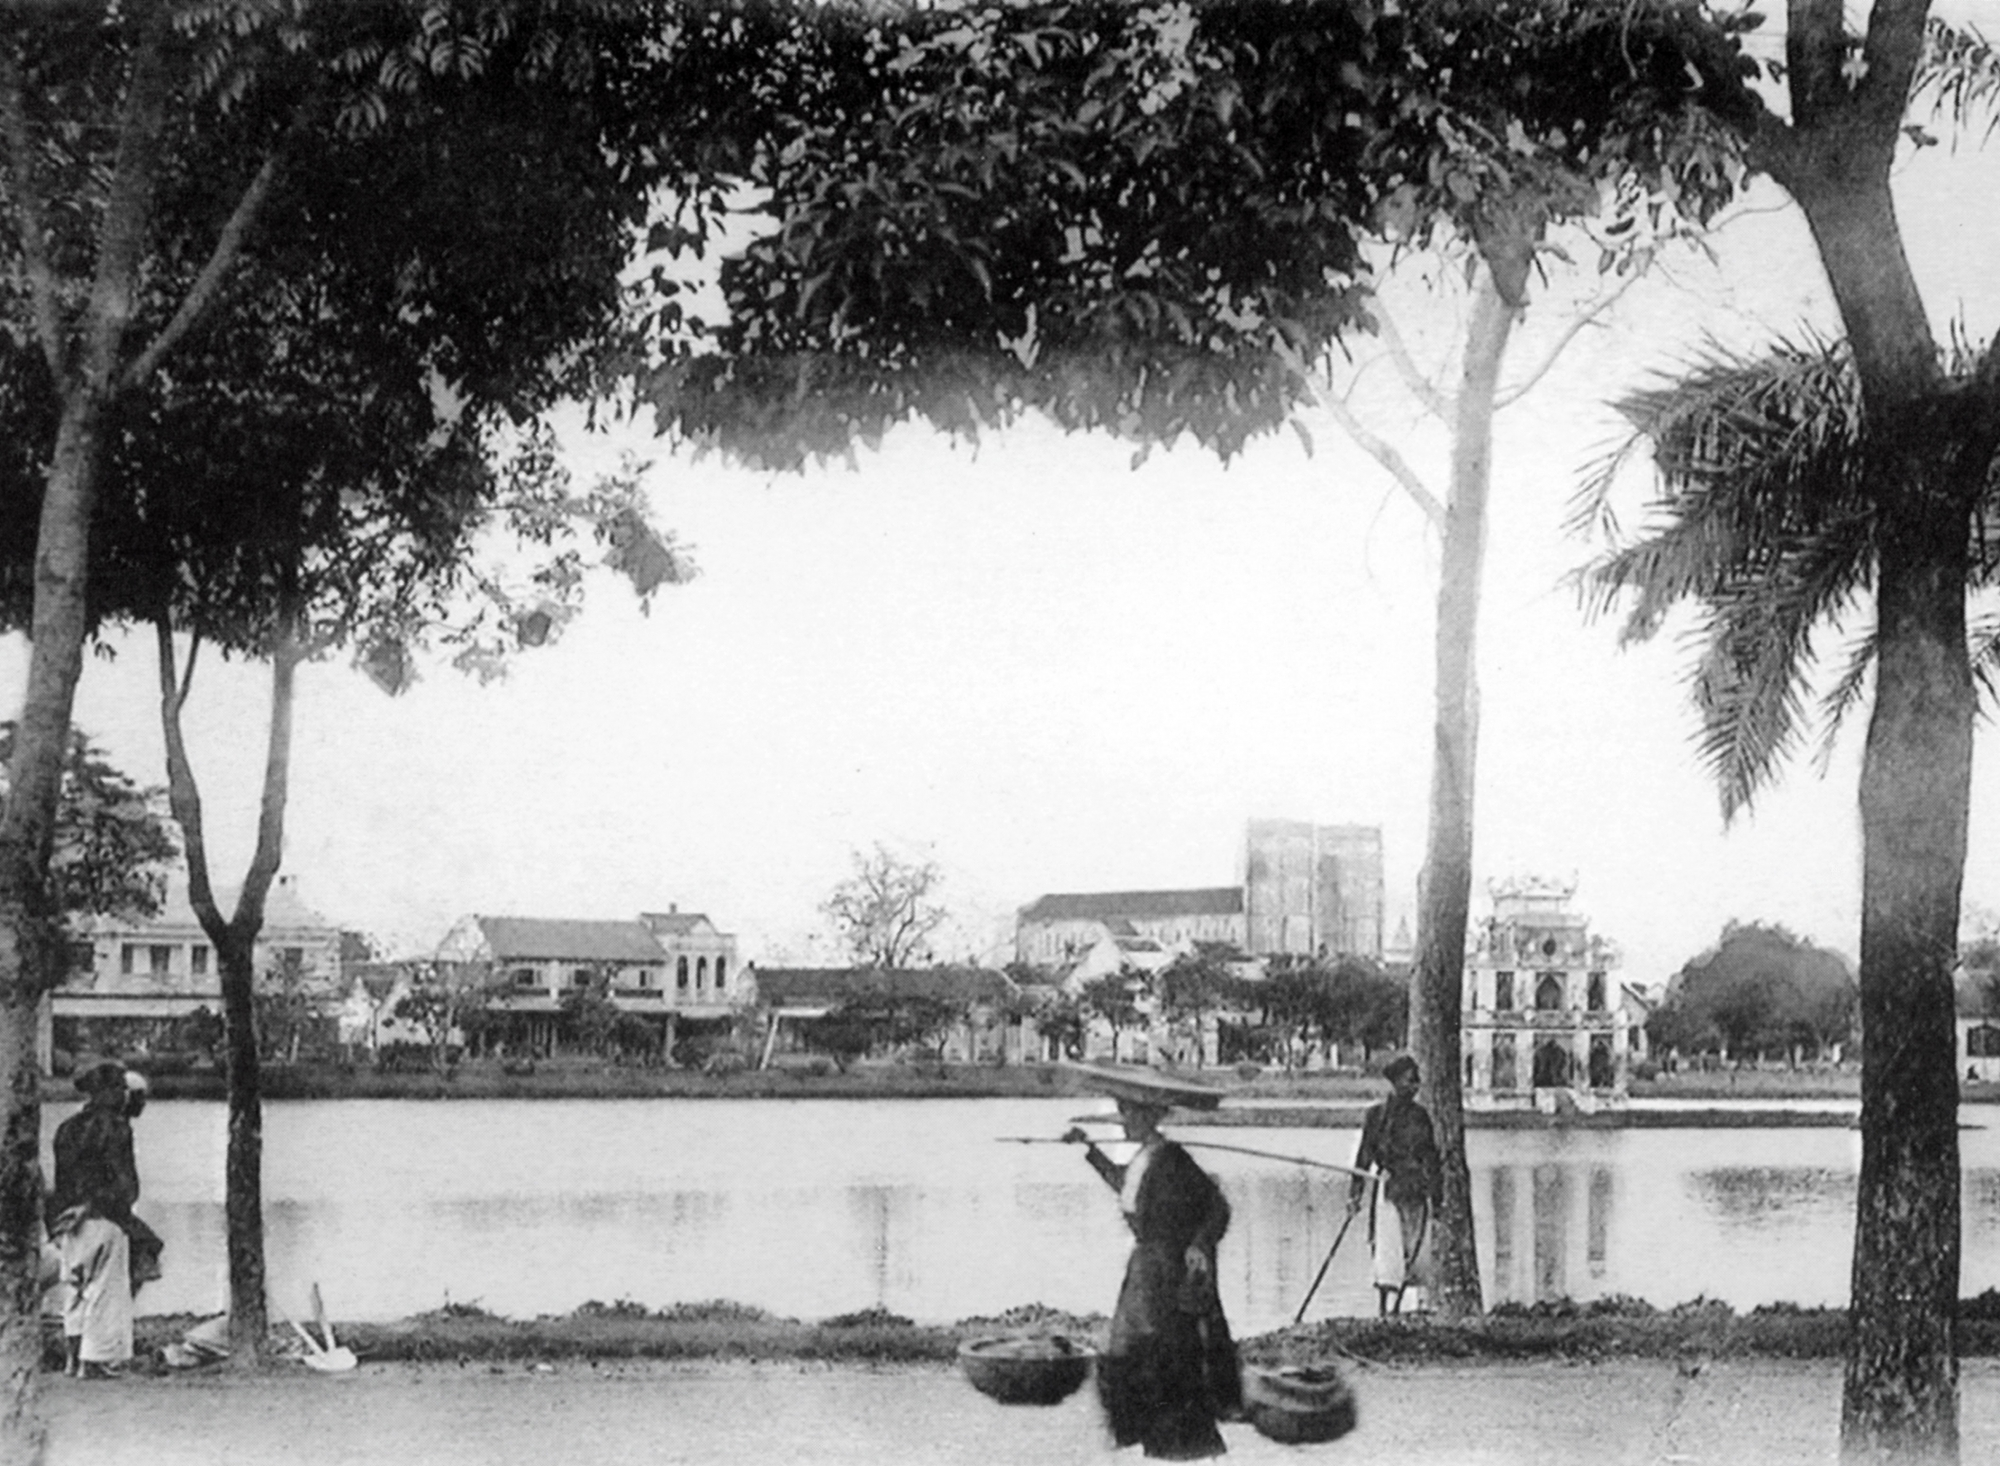 Photo of Hoan Kiem Lake, Hanoi, early 20th century. Copyright aka-images